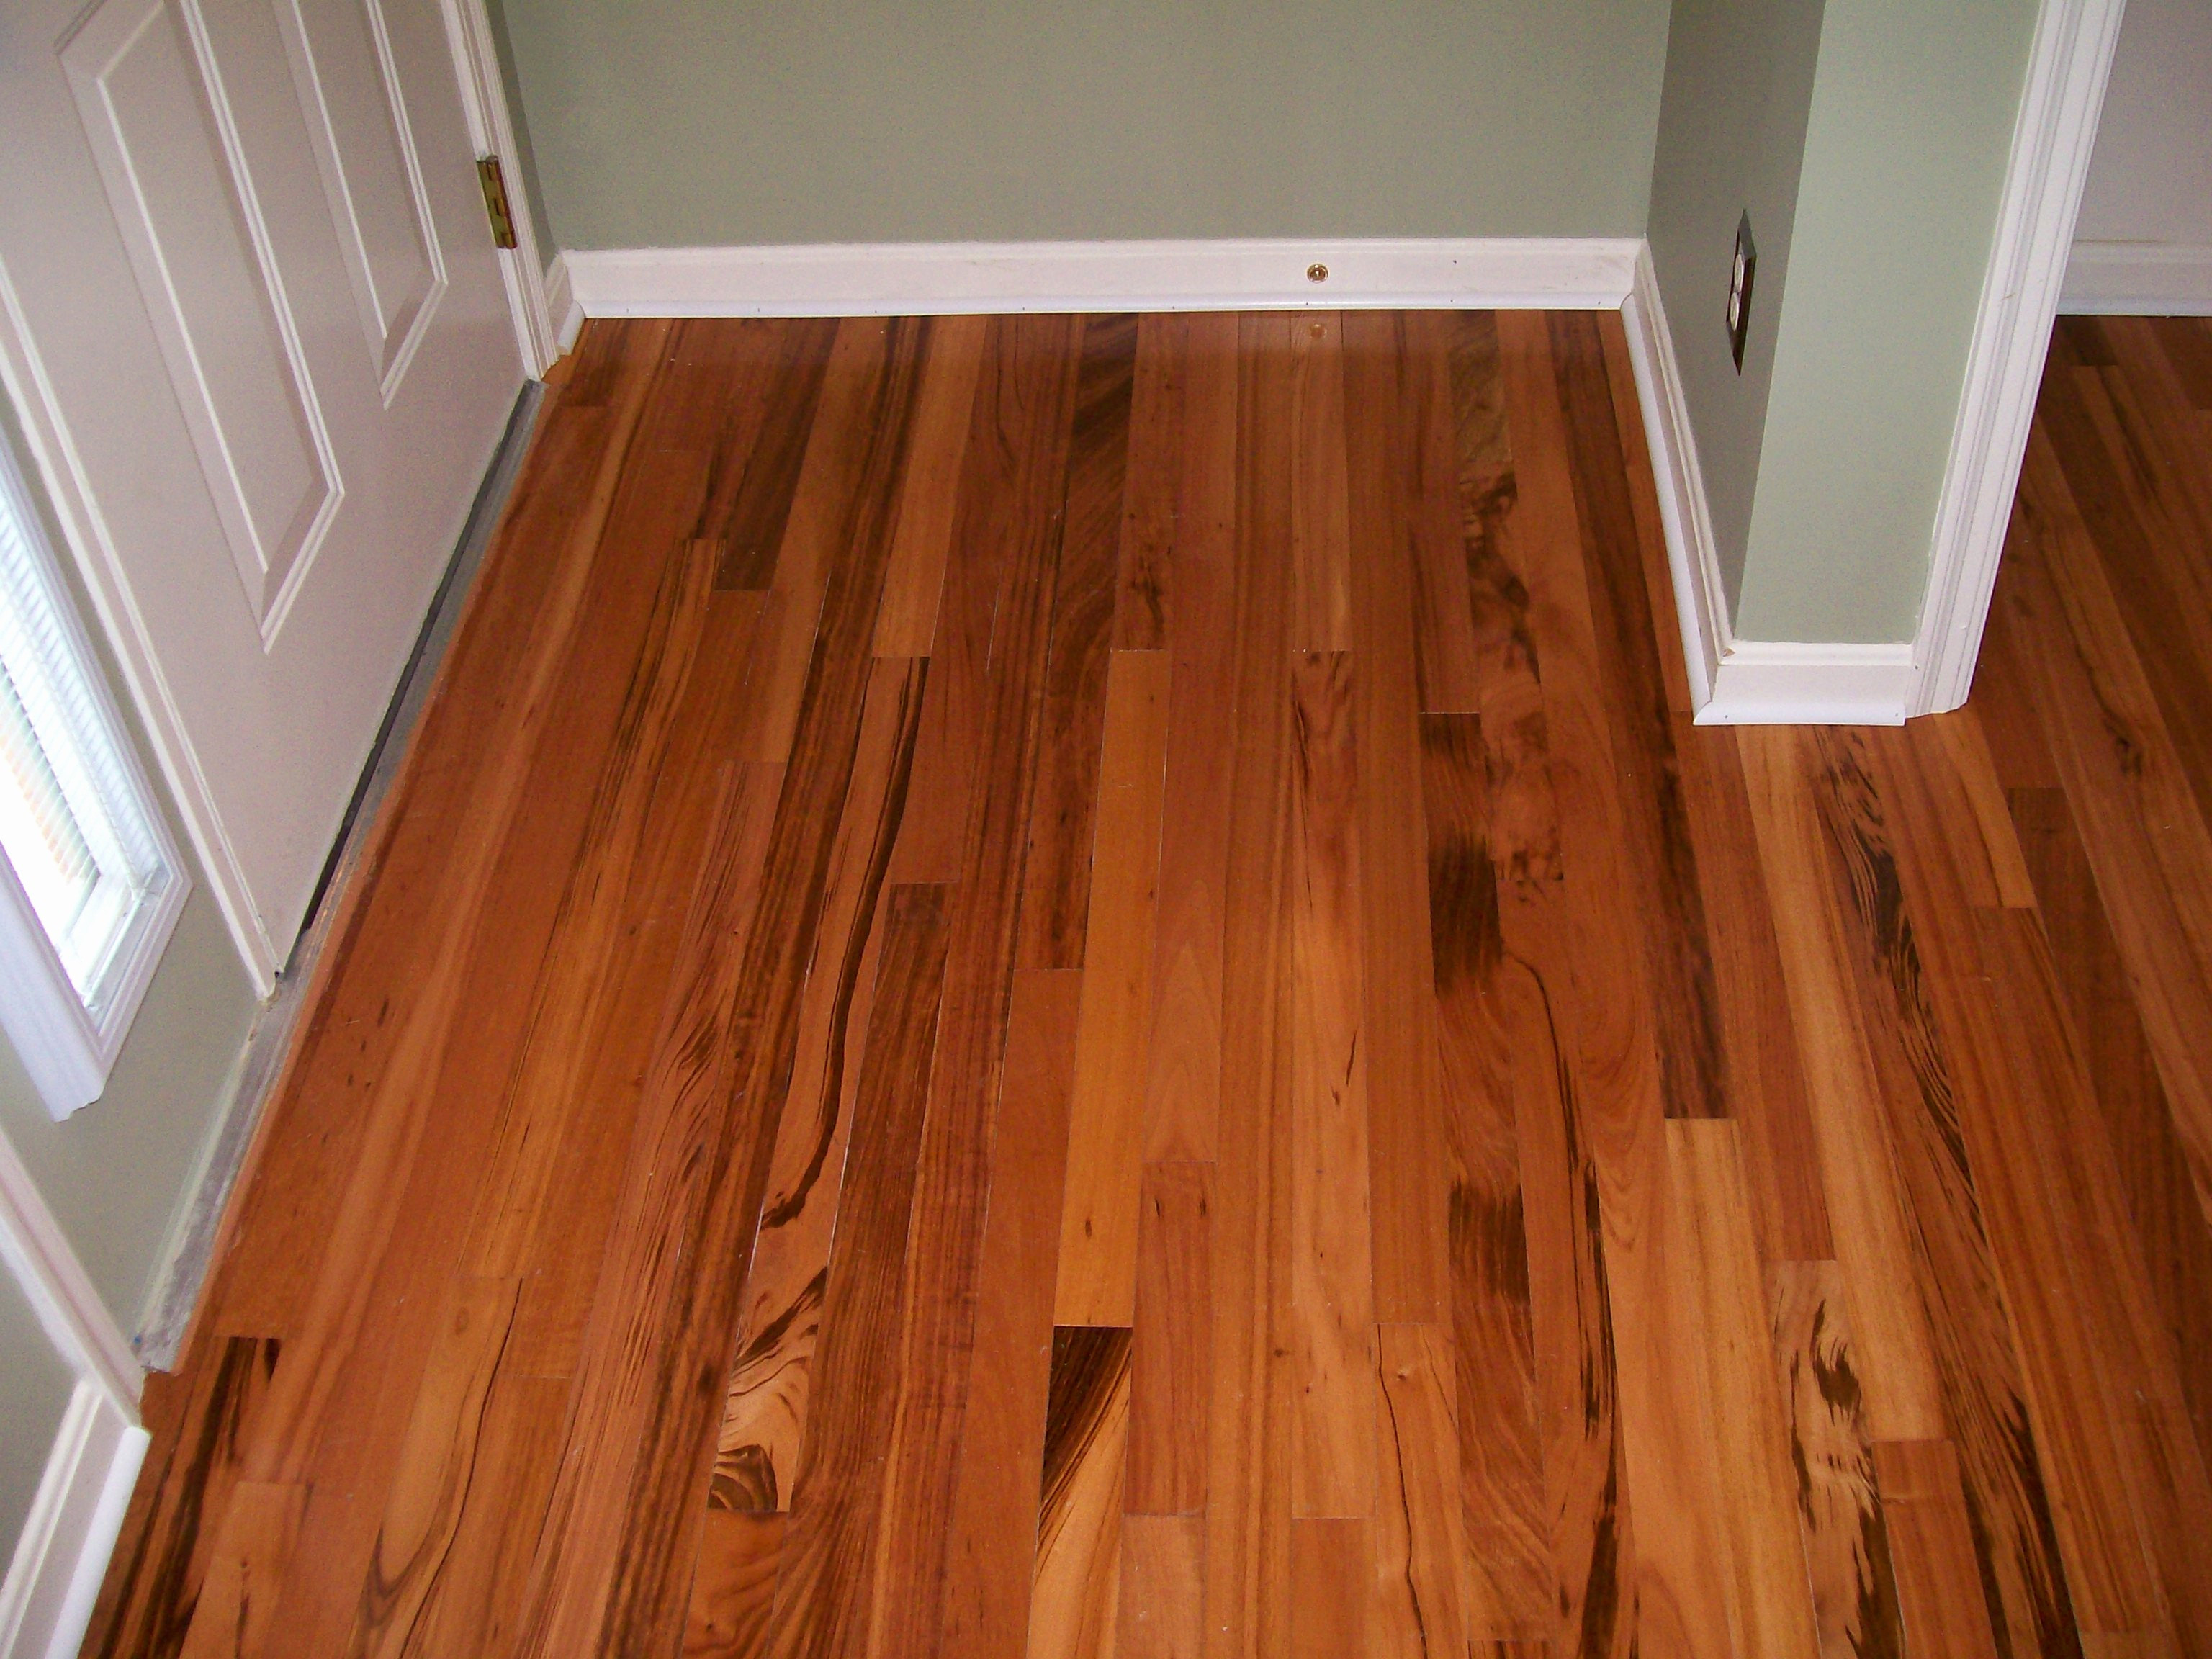 prefinished hardwood flooring cost per square foot of 17 new cost of hardwood floor installation pics dizpos com inside cost of hardwood floor installation new 50 fresh estimated cost installing hardwood floors 50 photos of